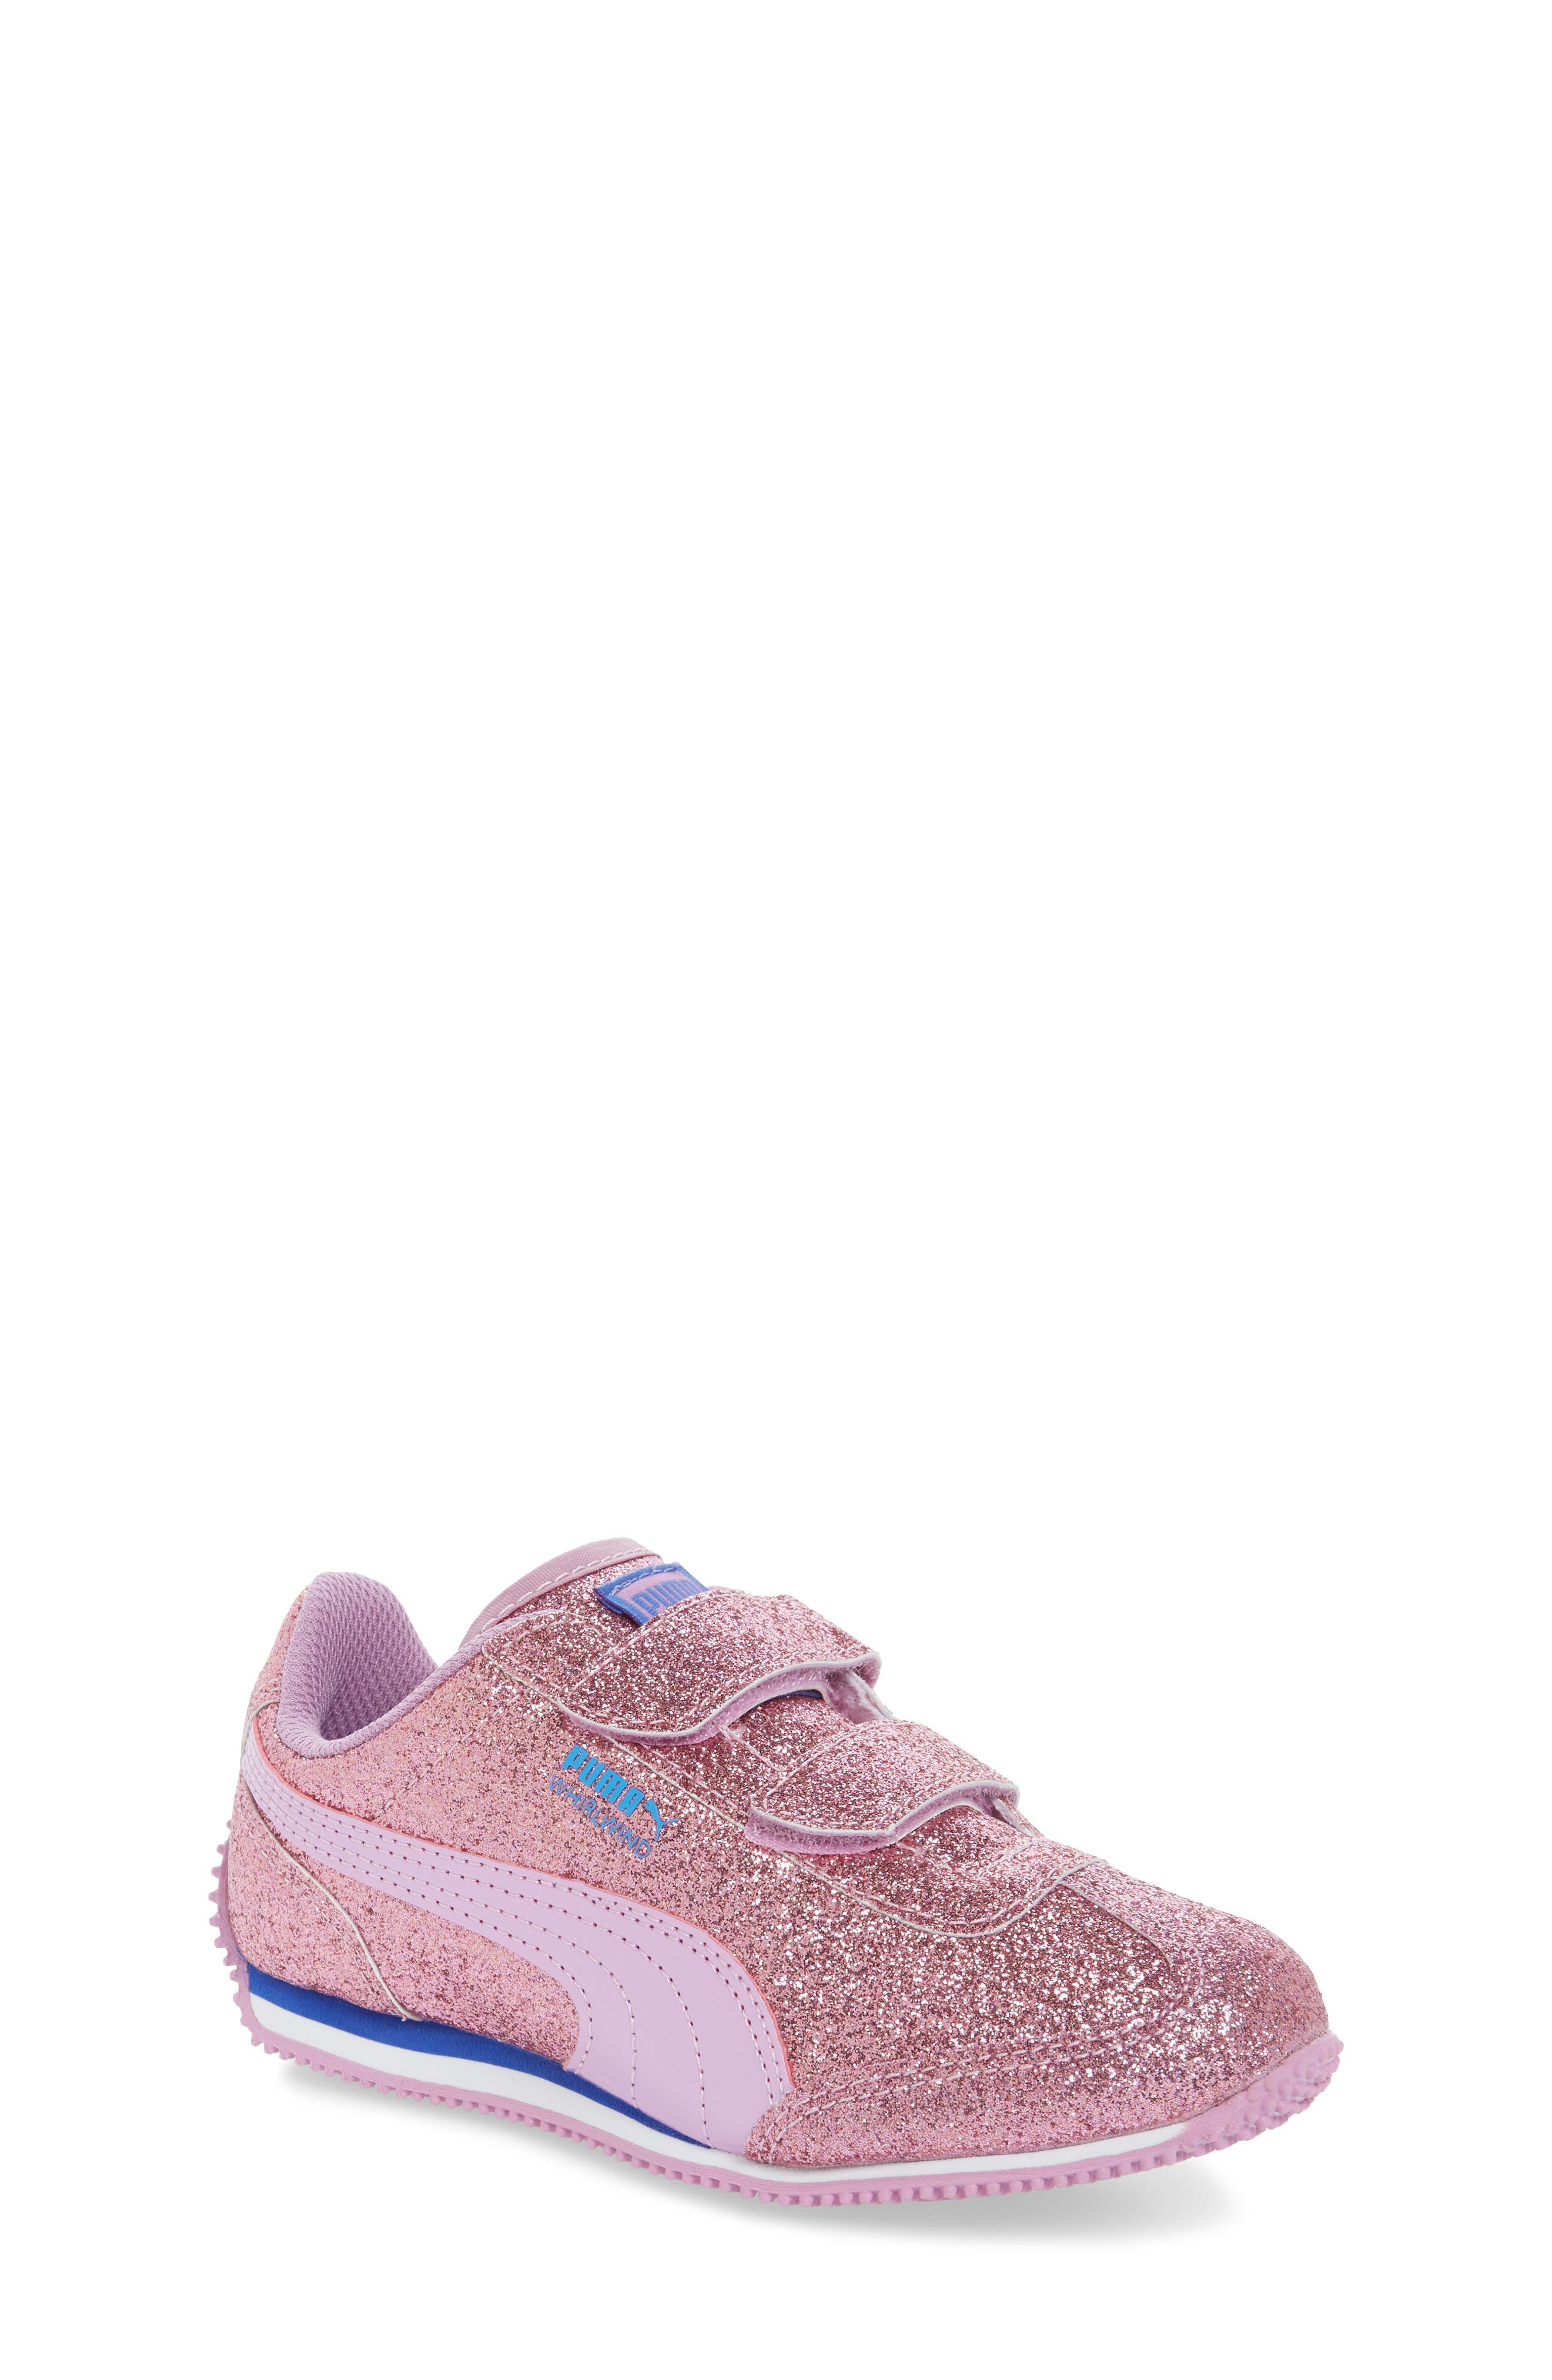 Whirlwind Glitz Sneaker,                         Main,                         color, Purple